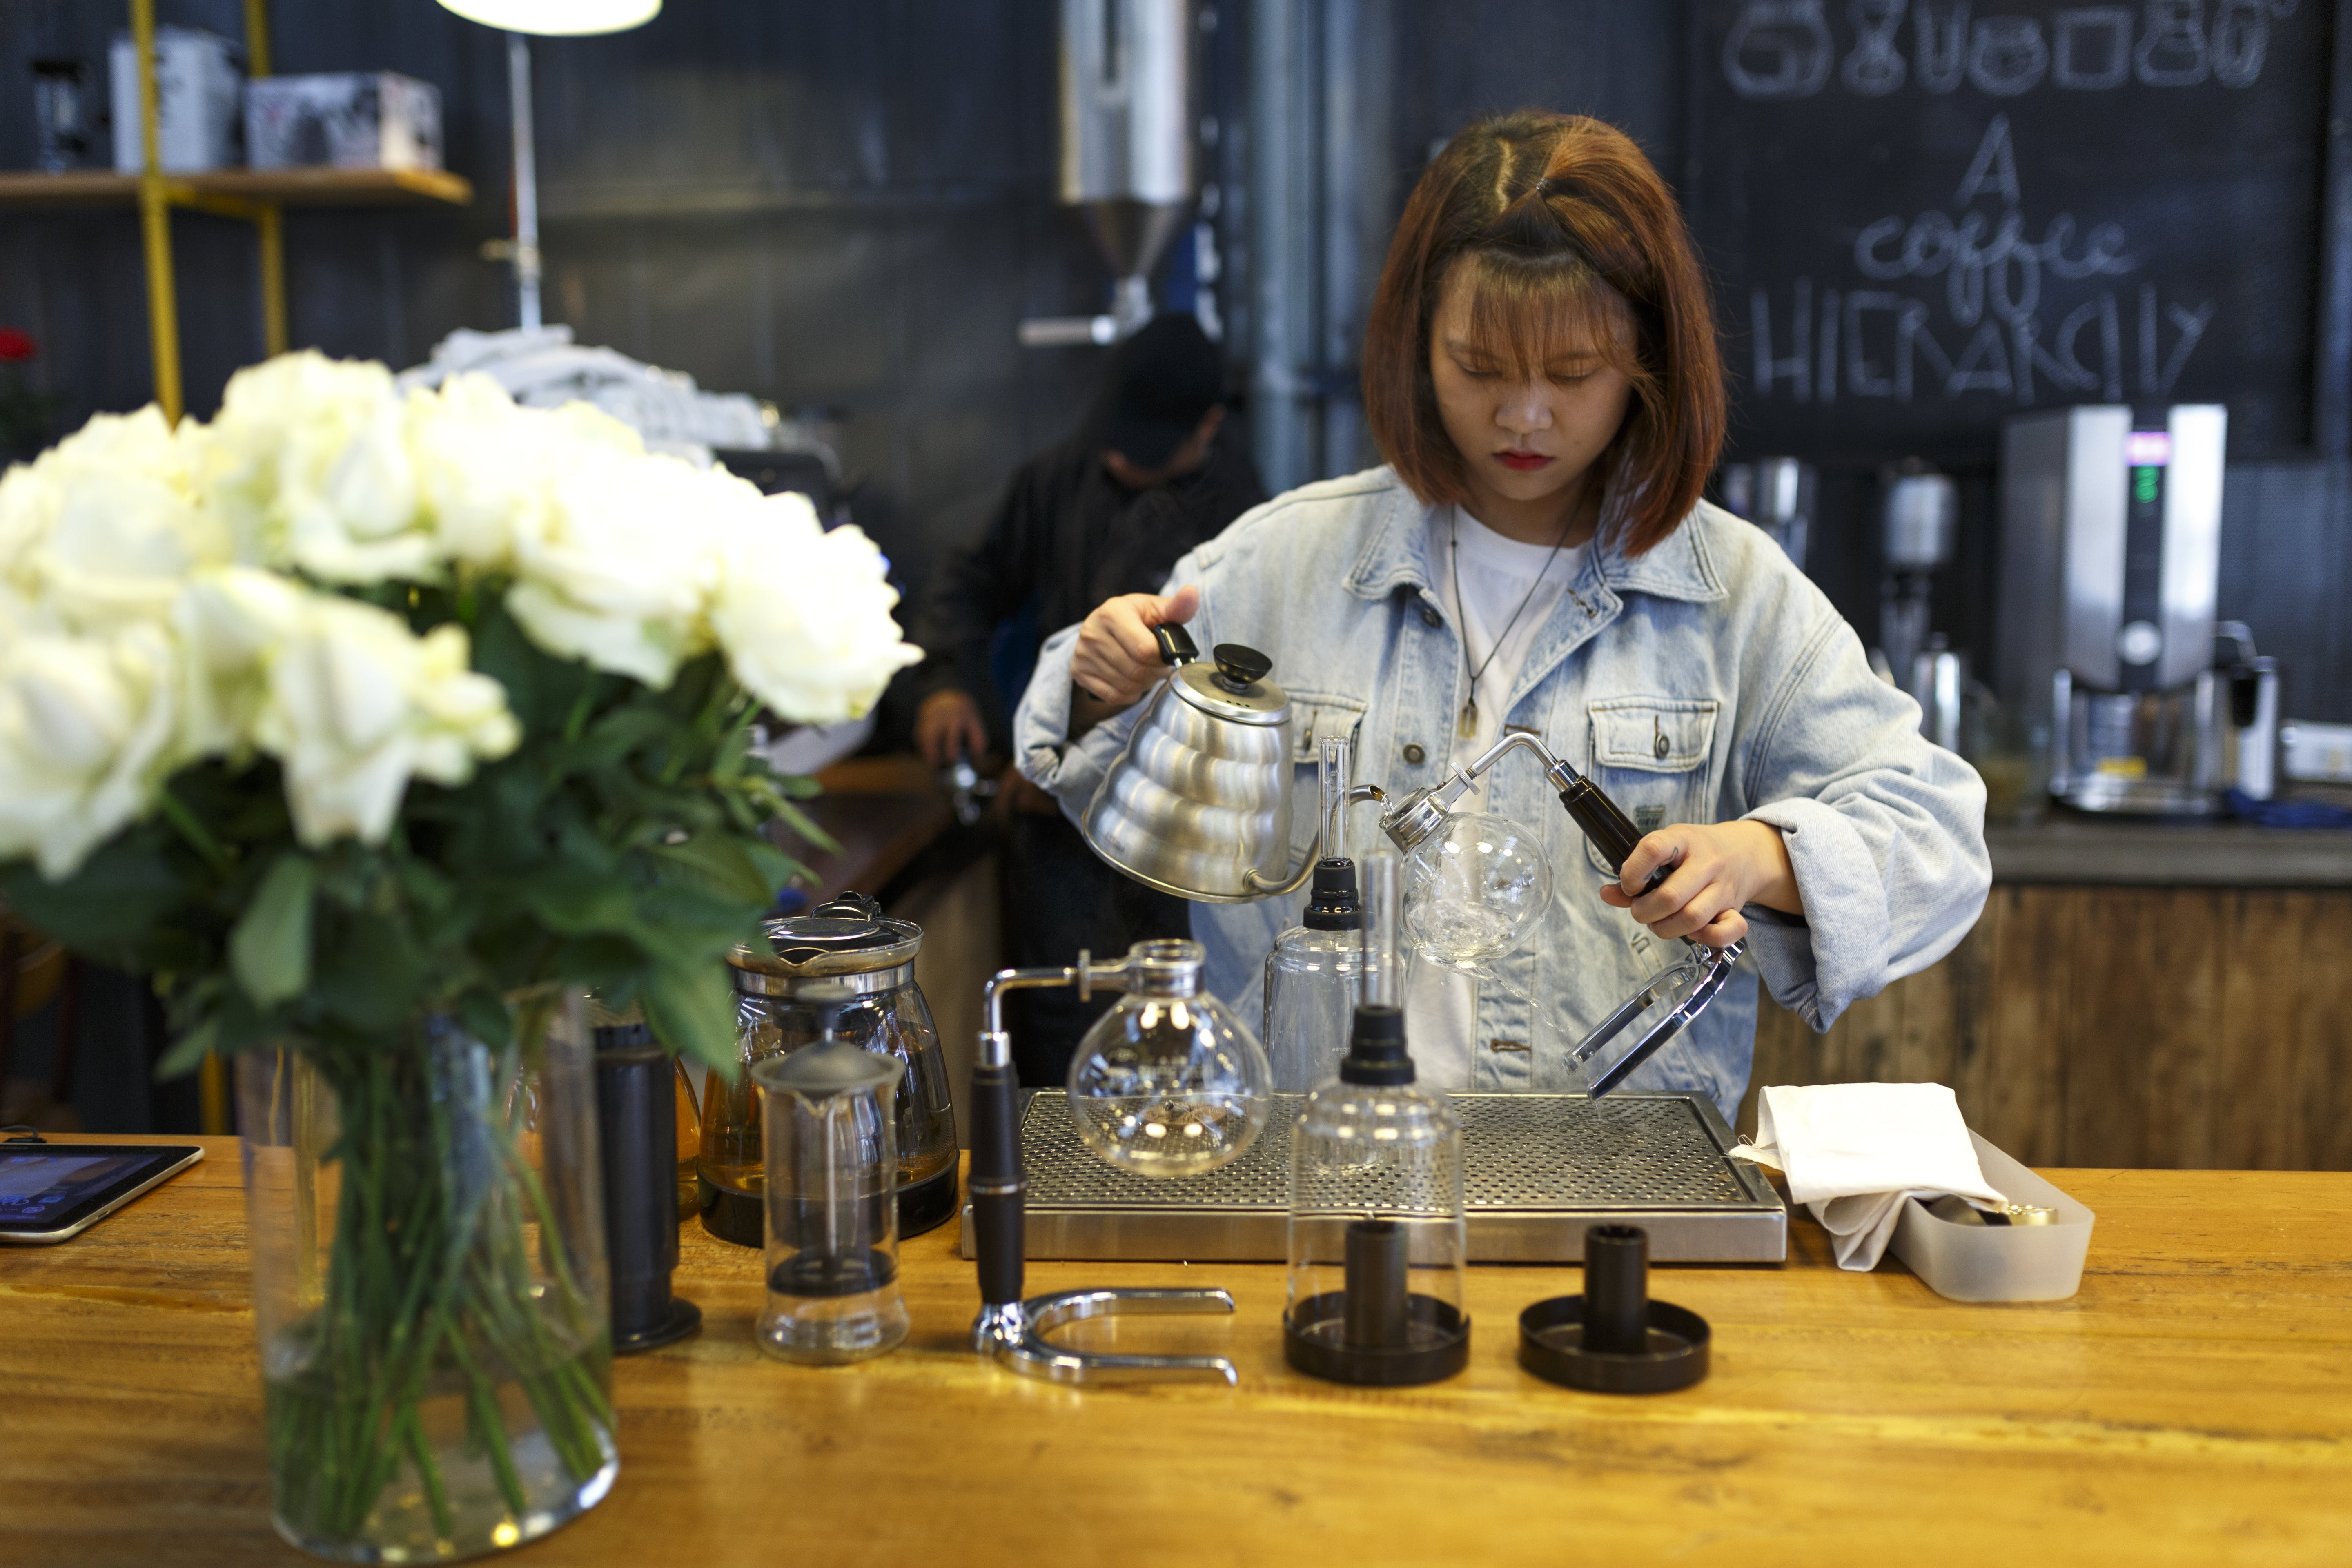 Woman Mixing Beverages